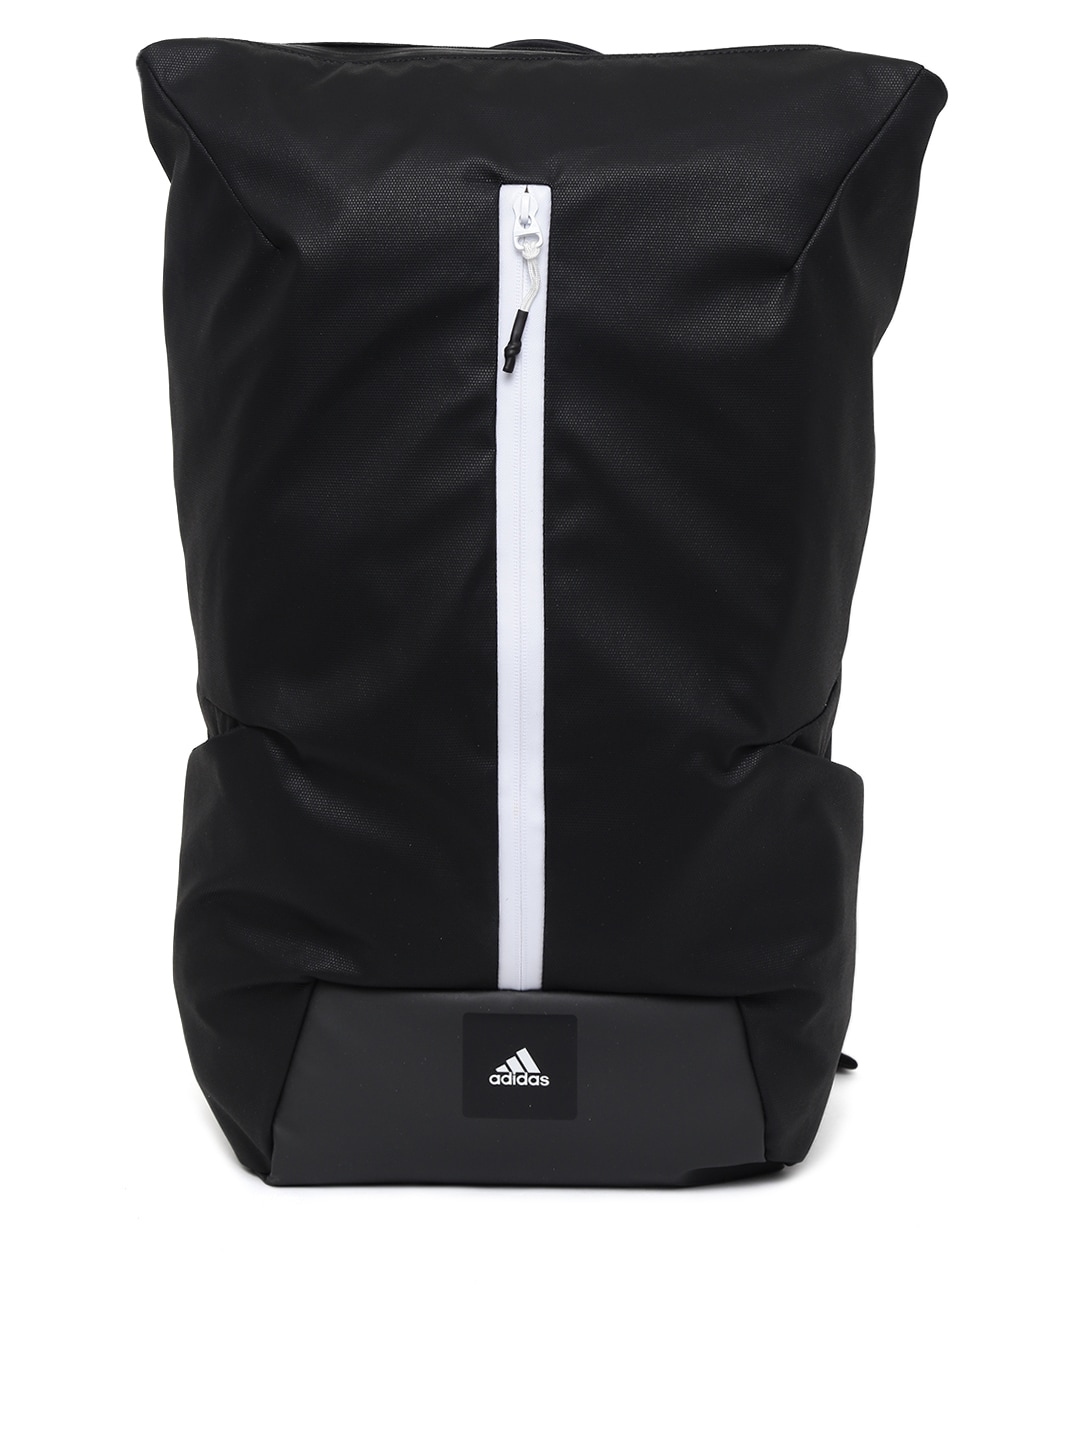 Adidas Climacool Backpack Laptop Bags - Buy Adidas Climacool Backpack  Laptop Bags online in India 57d09638a5f1e